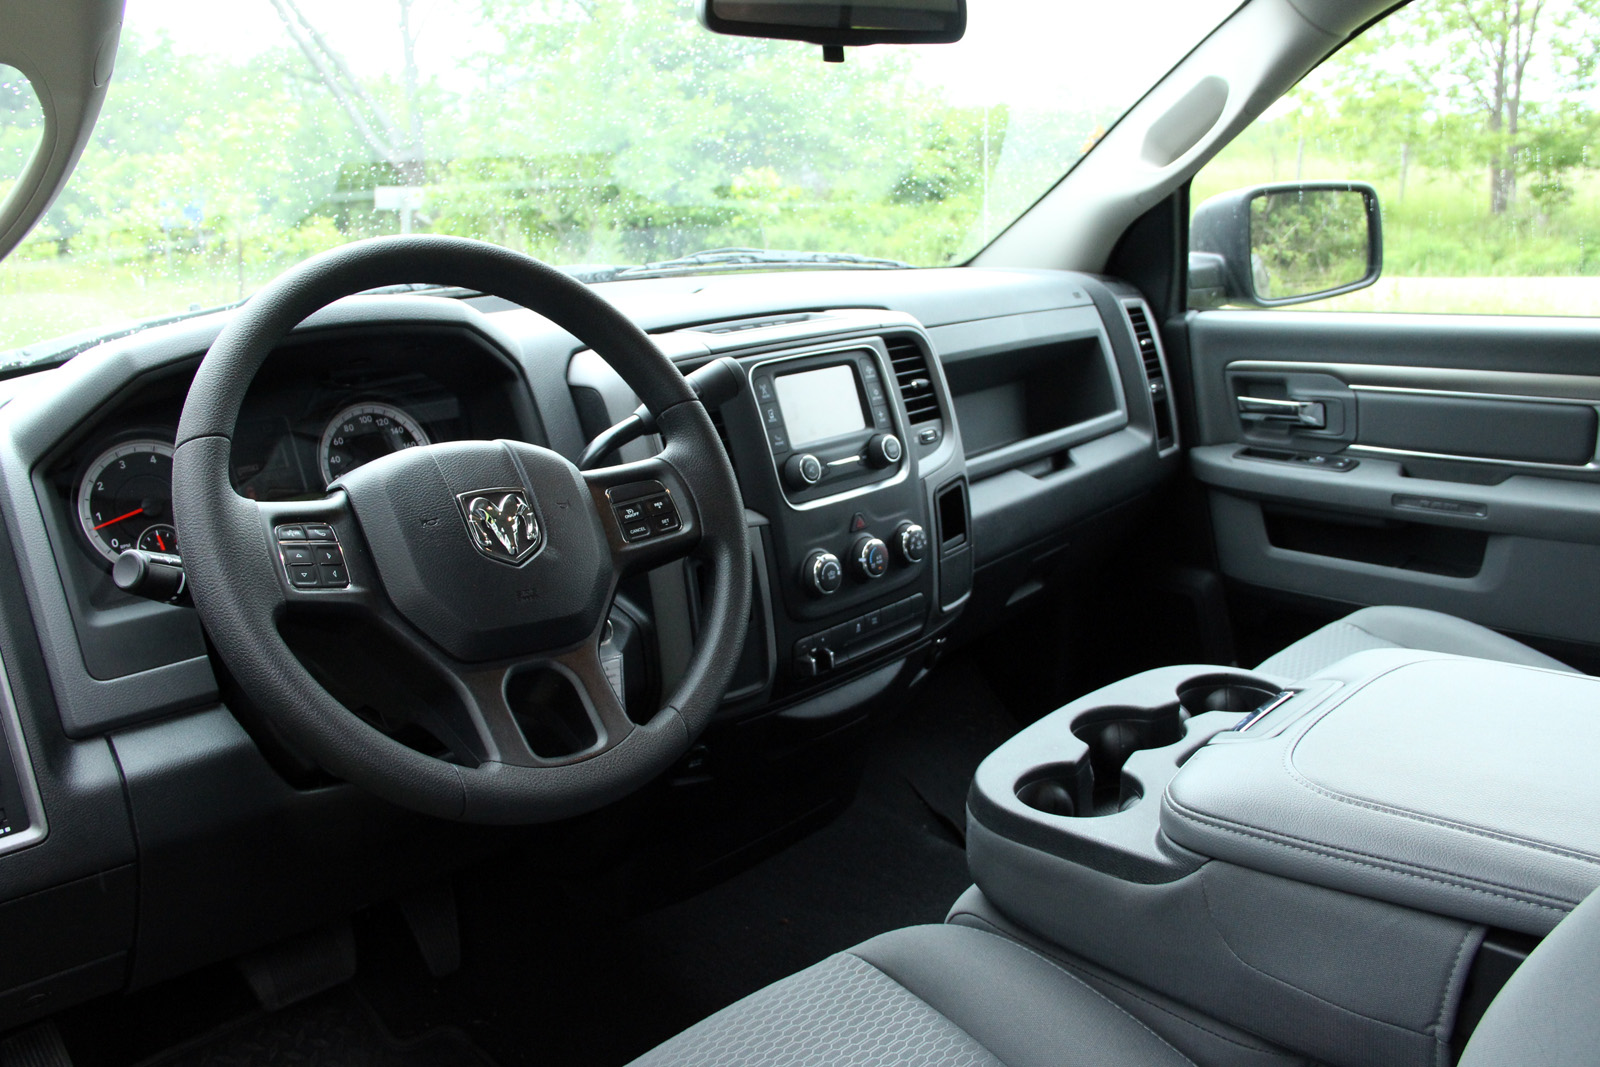 2015 Ram 1500 Black Express INterior Design